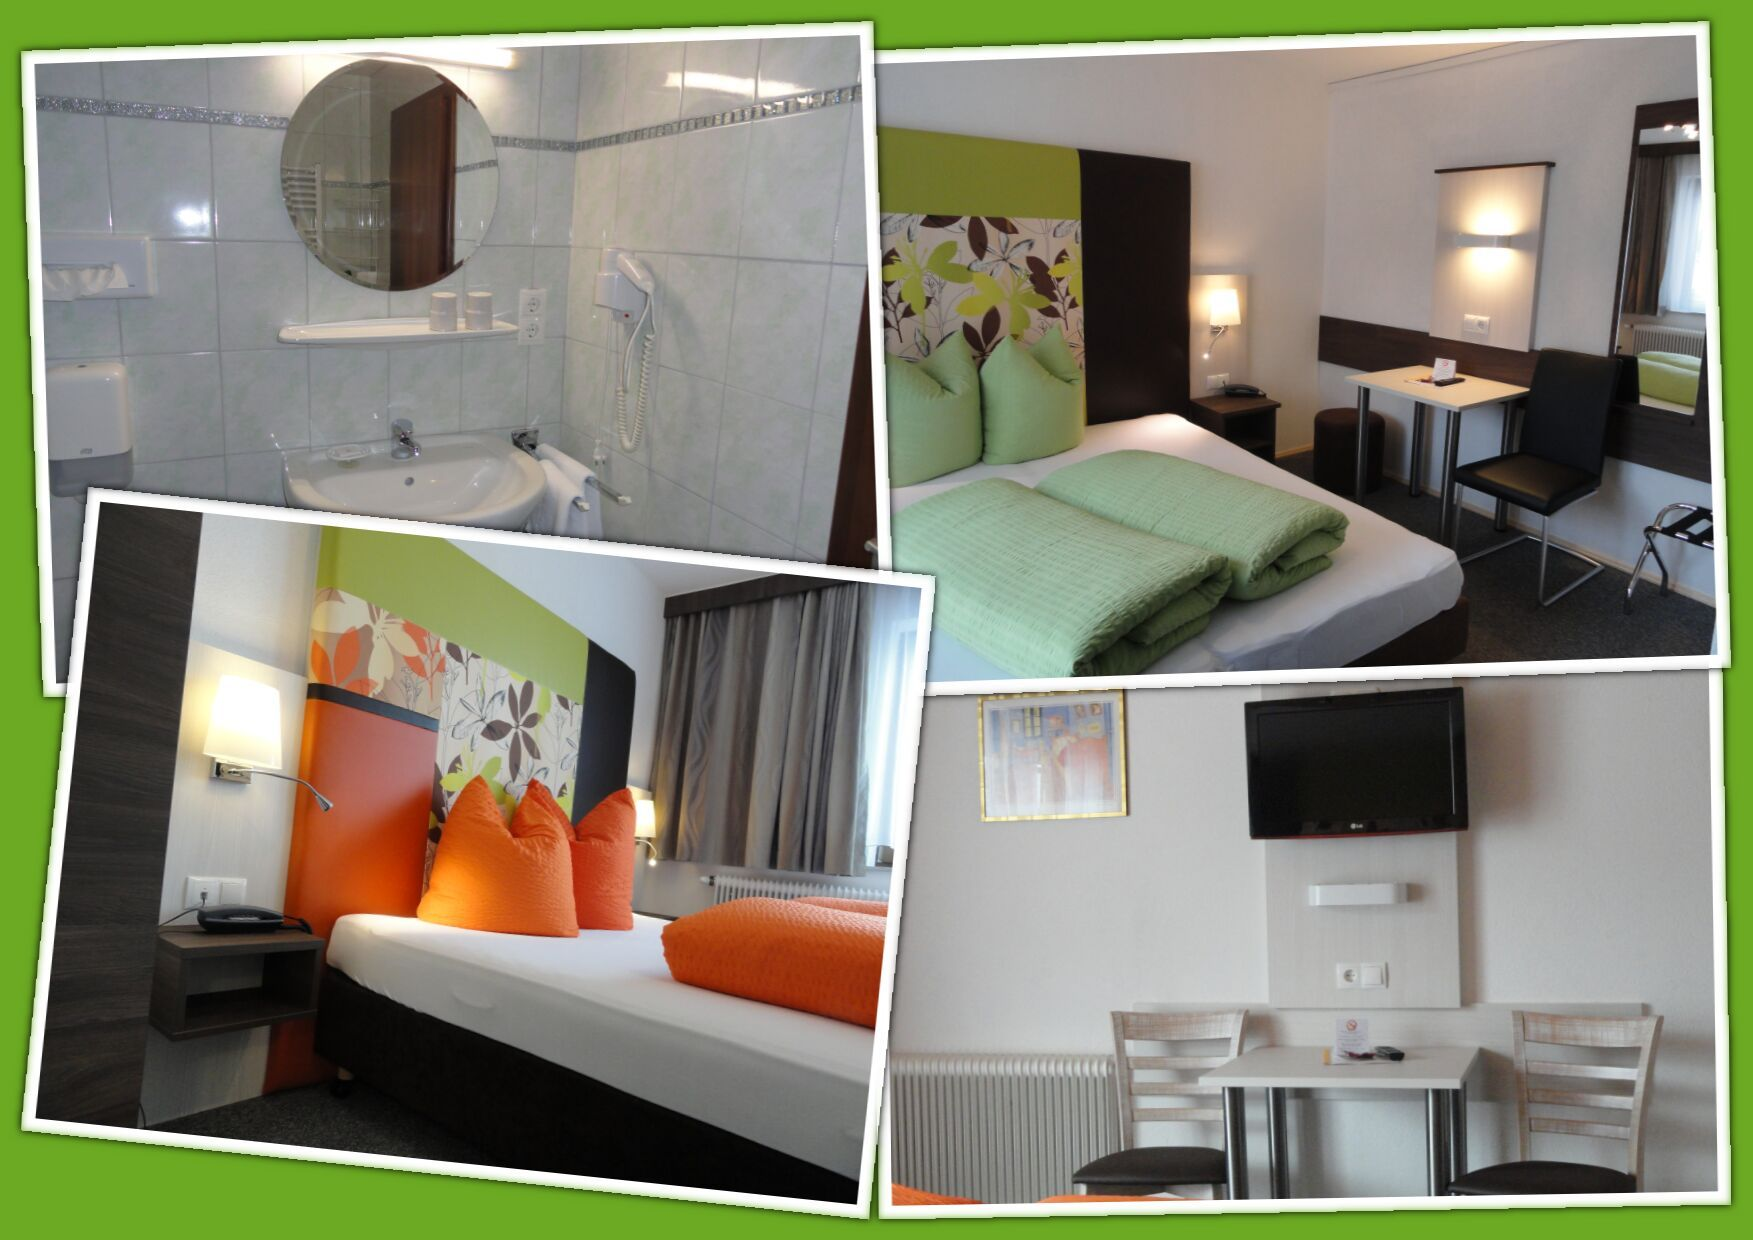 CHAMBRE_HIP_Hotel B&B Appartements Glungezer in Tulfes bei Innsbruck